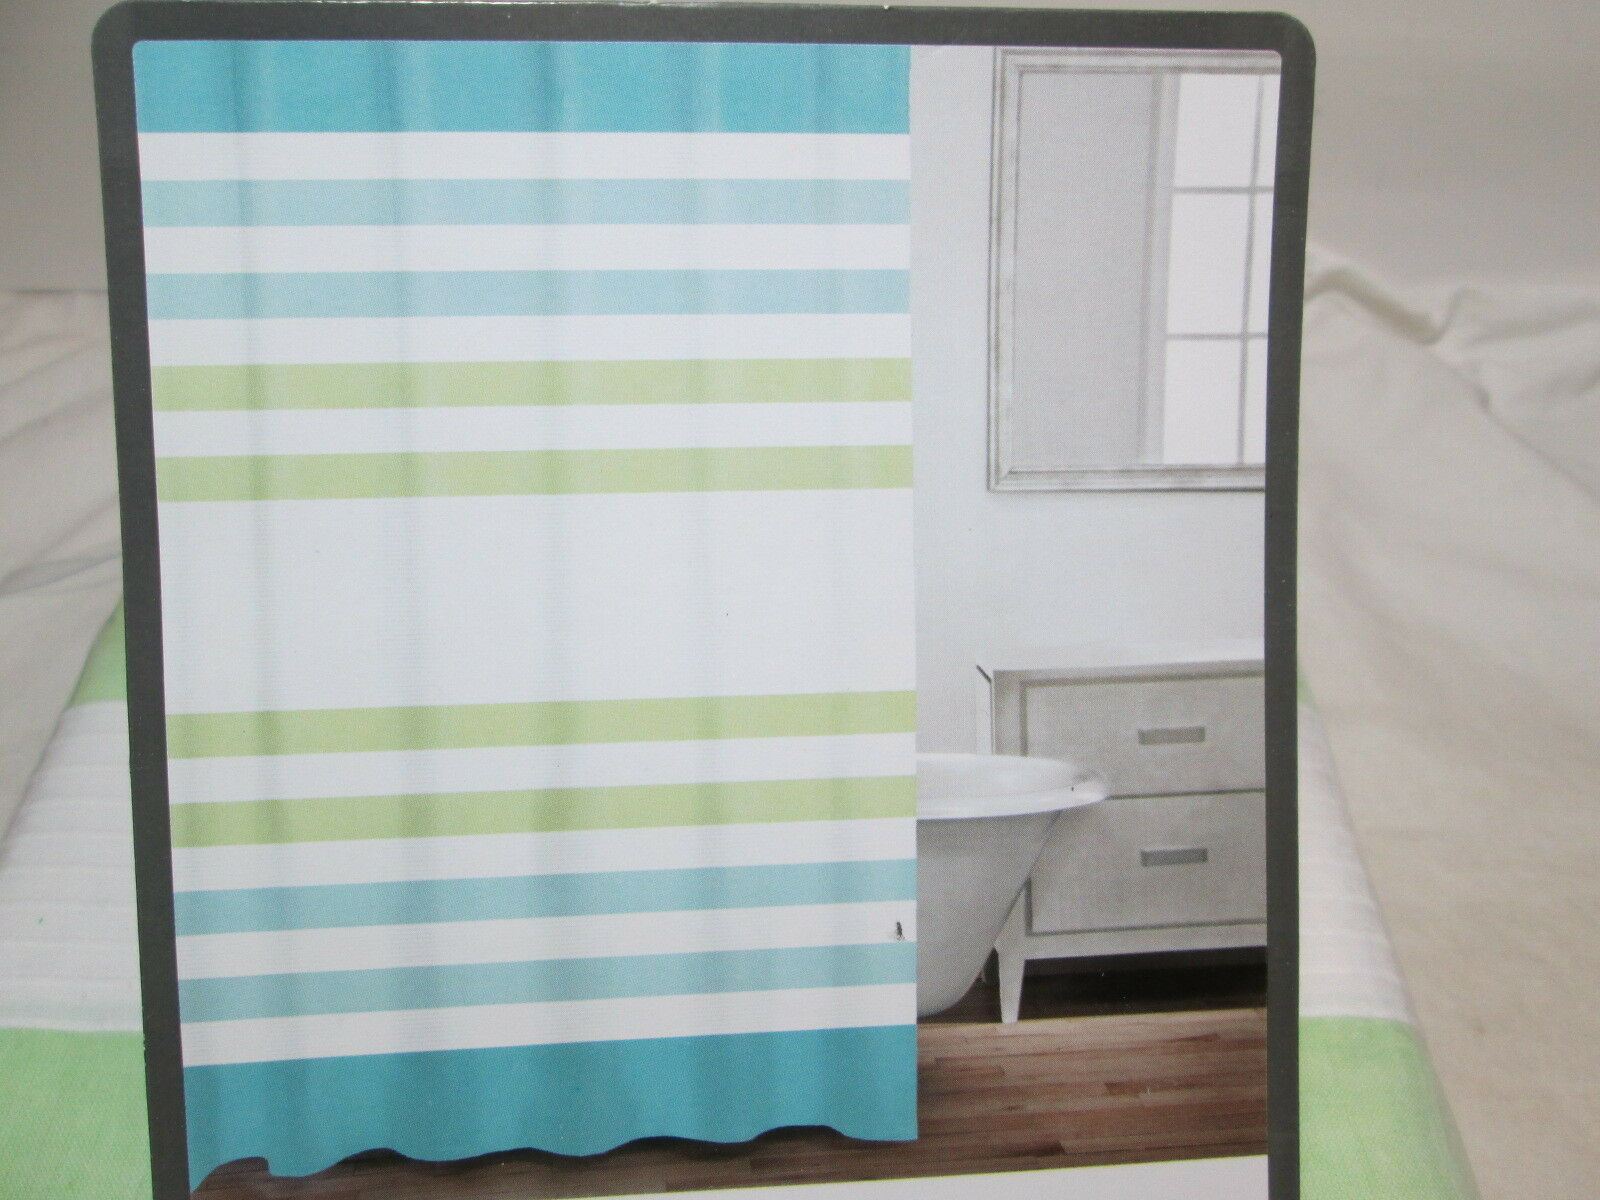 New Caro Home Cotton Shower Curtain 72x72 Blue Green White Horizontal Stripe 1 Of 6Only Available